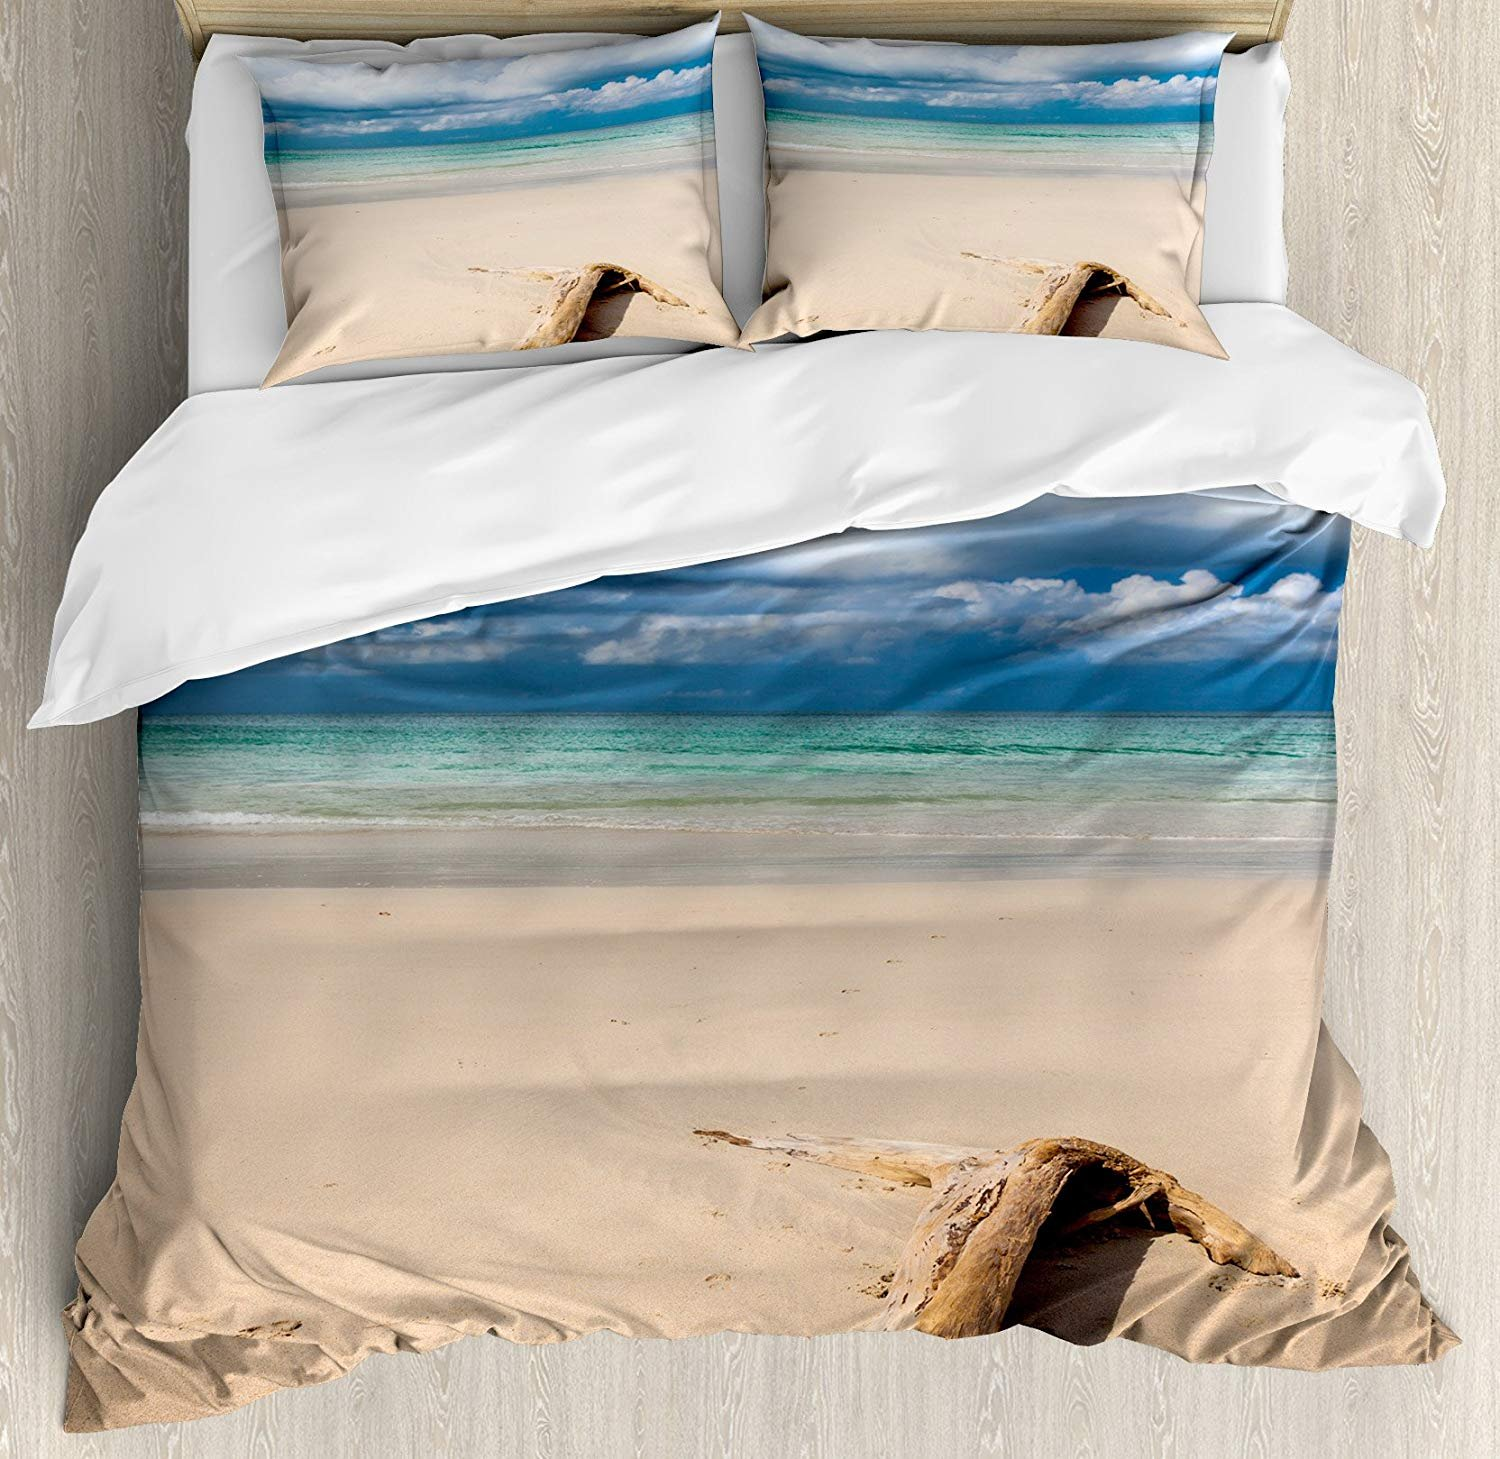 Driftwood Bedding Duvet Cover Sets for Children/Adult/Kids/Teens Twin Size, Sea Theme Driftwood on the Sandy Beach and Cloudy Sky Digital Style Print, Hotel Luxury Decorative 4pcs Set, Sand Brown Blue